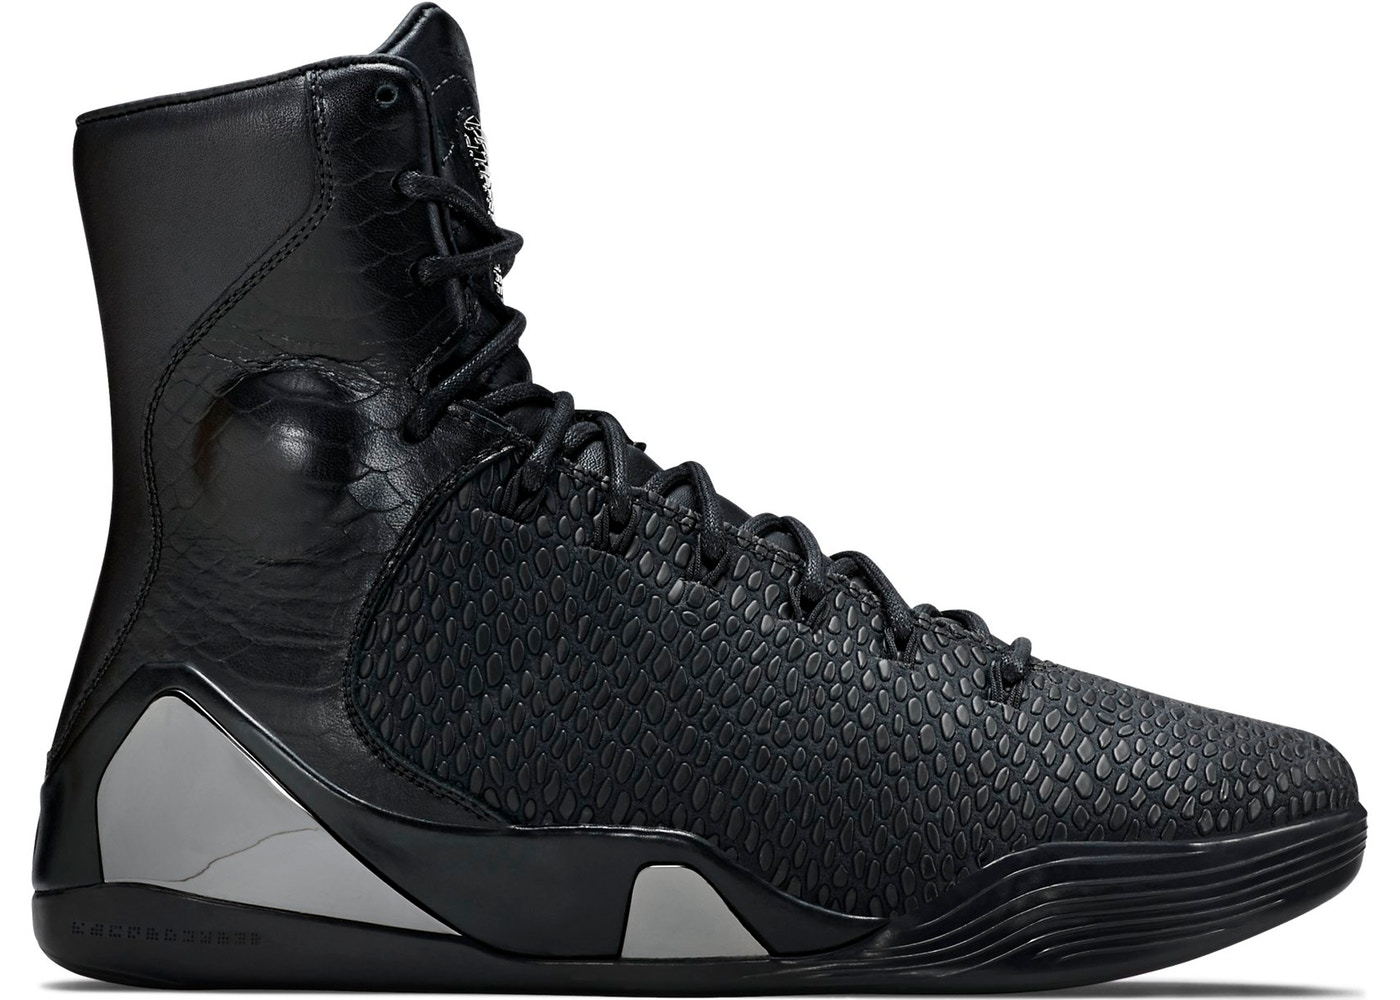 reputable site 5c0eb c86ba Nike Kobe 9 Shoes - Average Sale Price